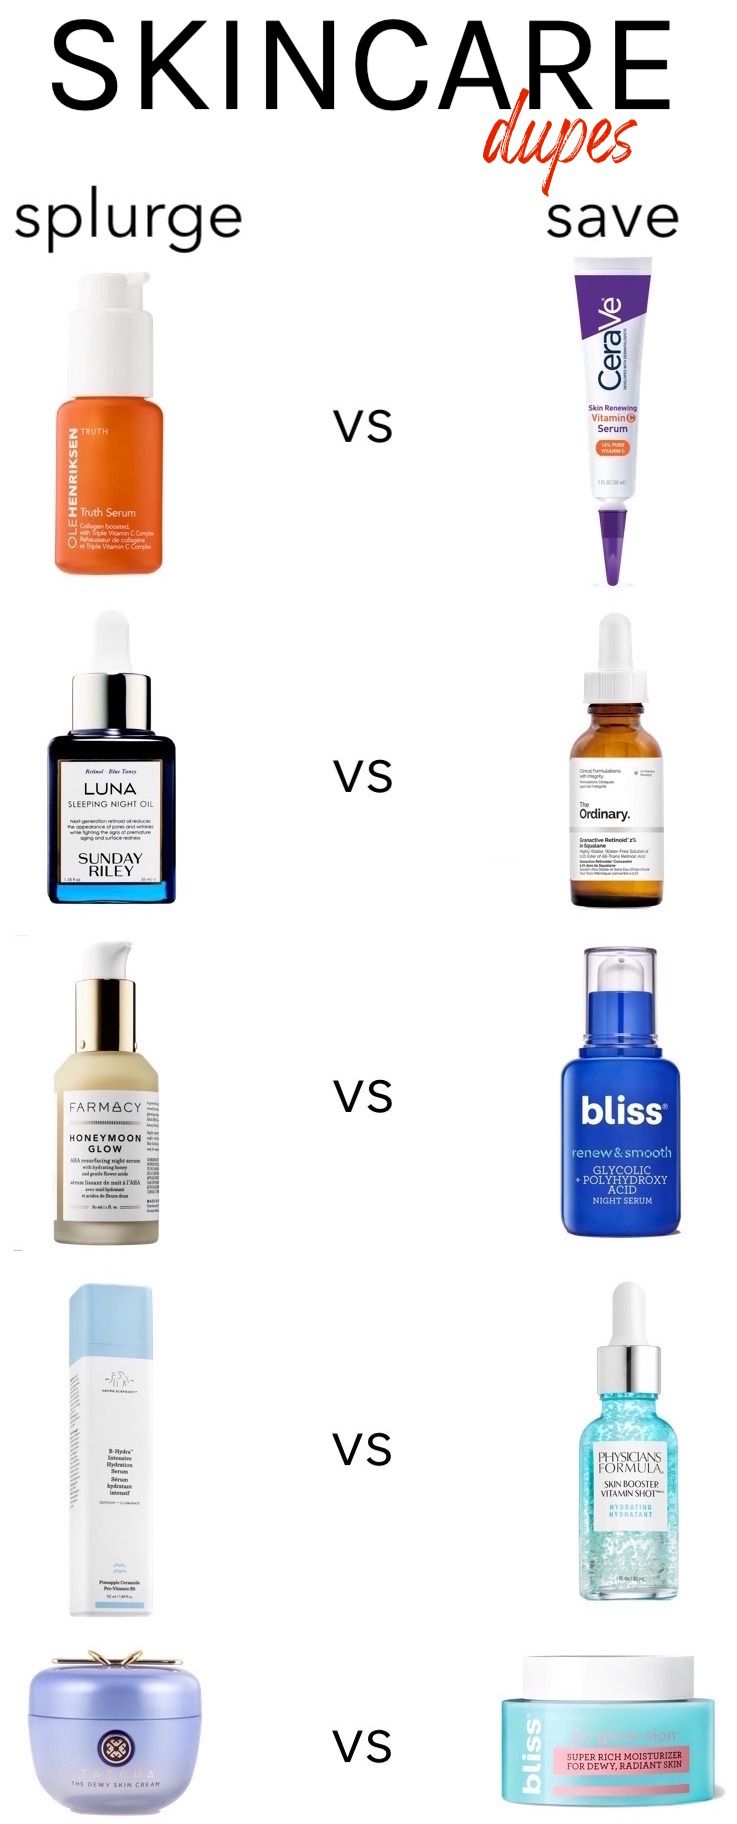 10 Cheaper Skincare Dupes For Expensive Products Part 2 Skincare Dupes Cheap Skin Care Products Drugstore Skincare Dupes